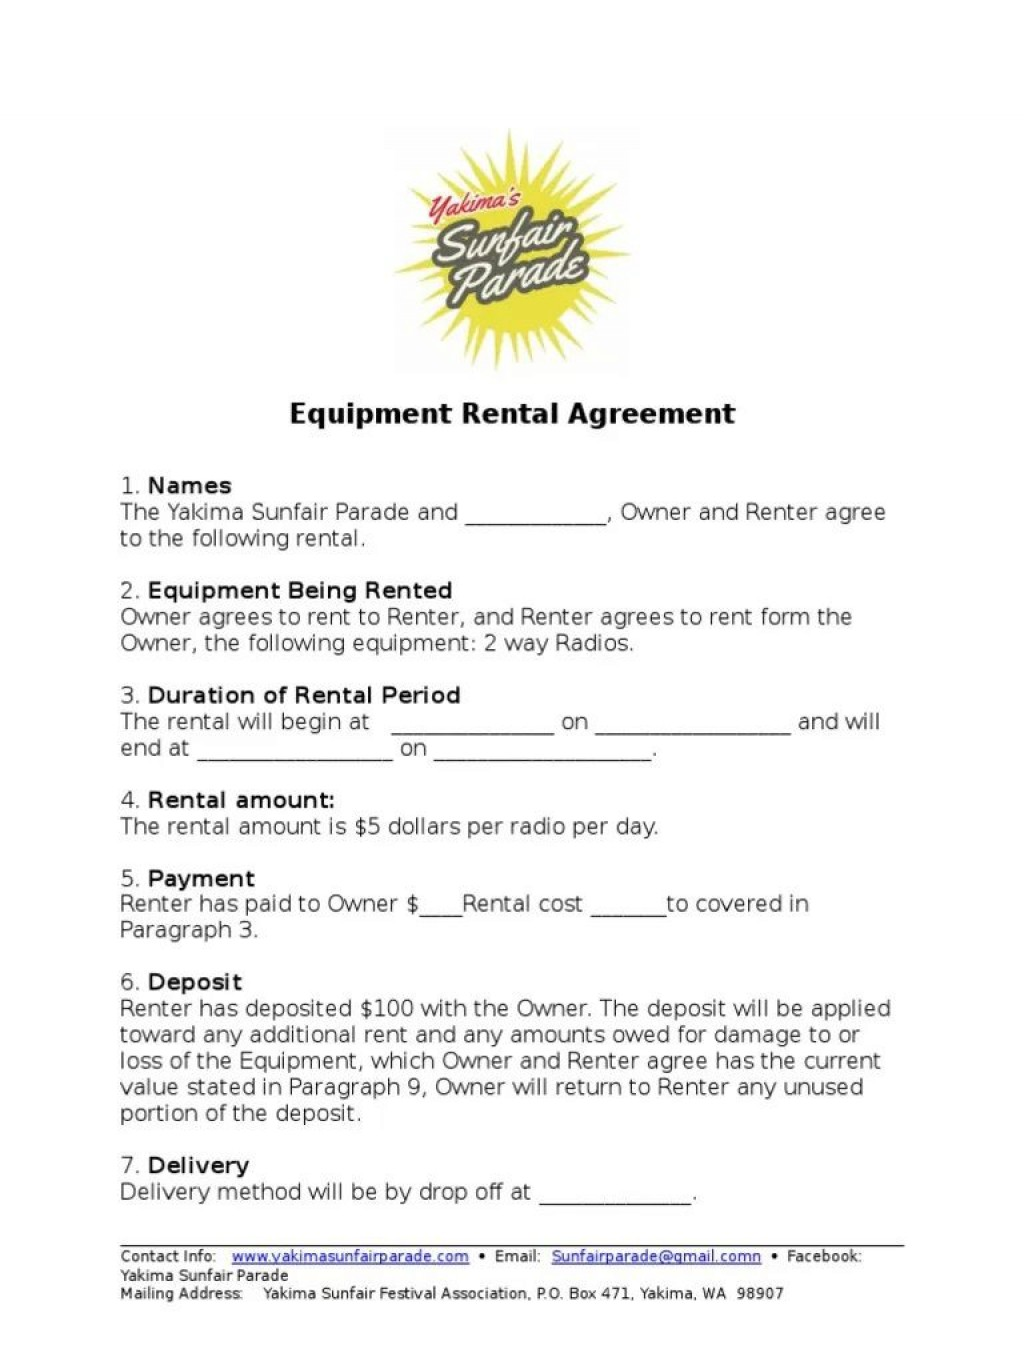 002 Archaicawful Equipment Rental Agreement Template Design  Canada Free South Africa PdfLarge